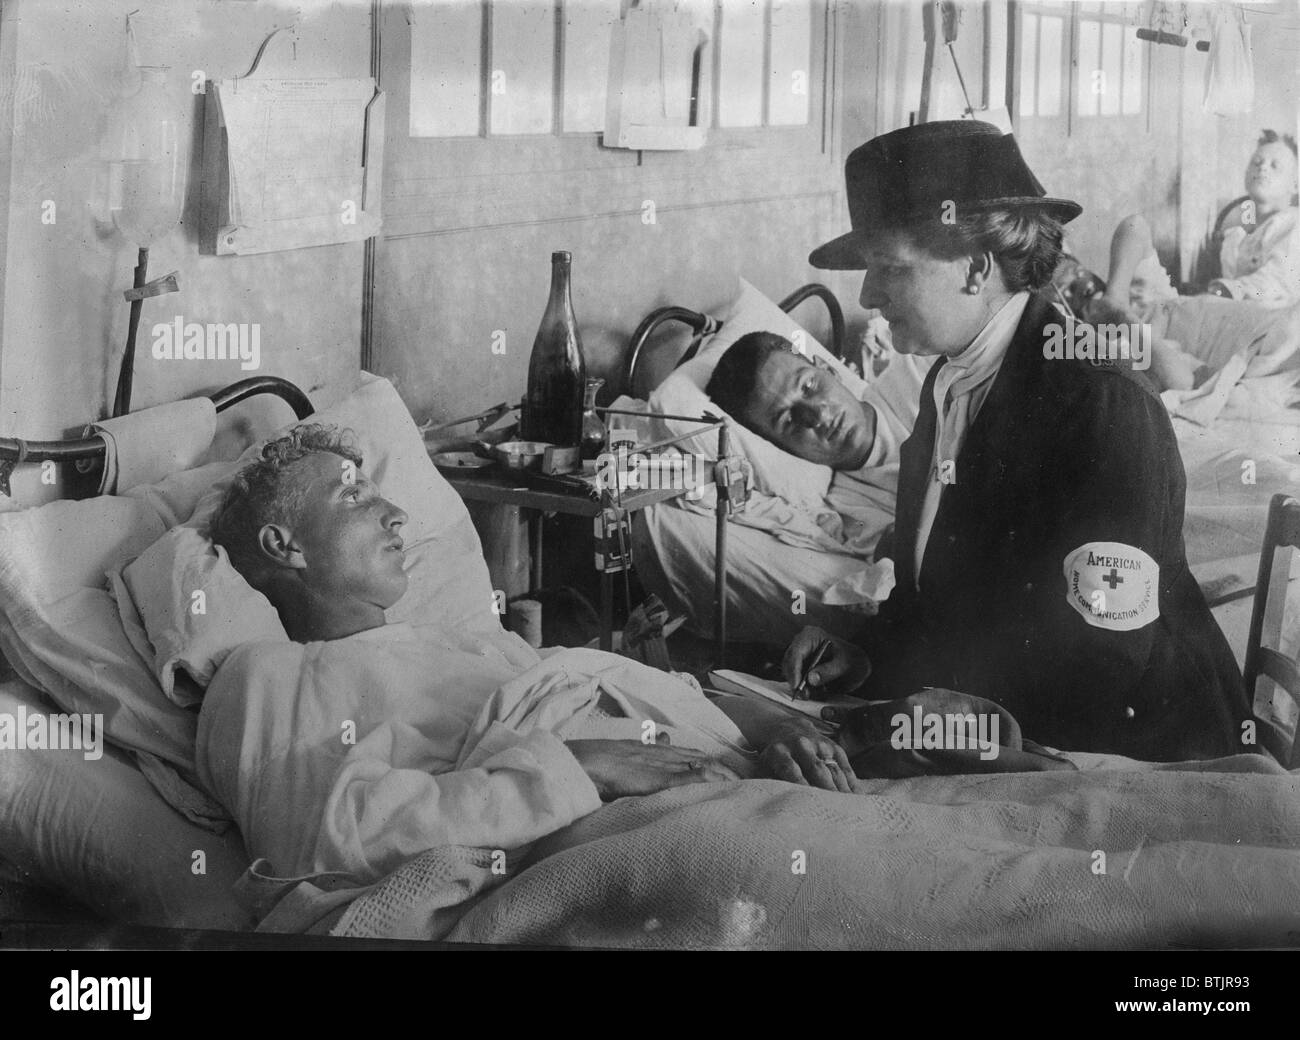 World War I, taking a message for home from a U.S. soldier at Neuilly, France, circa 1914-1918. - Stock Image